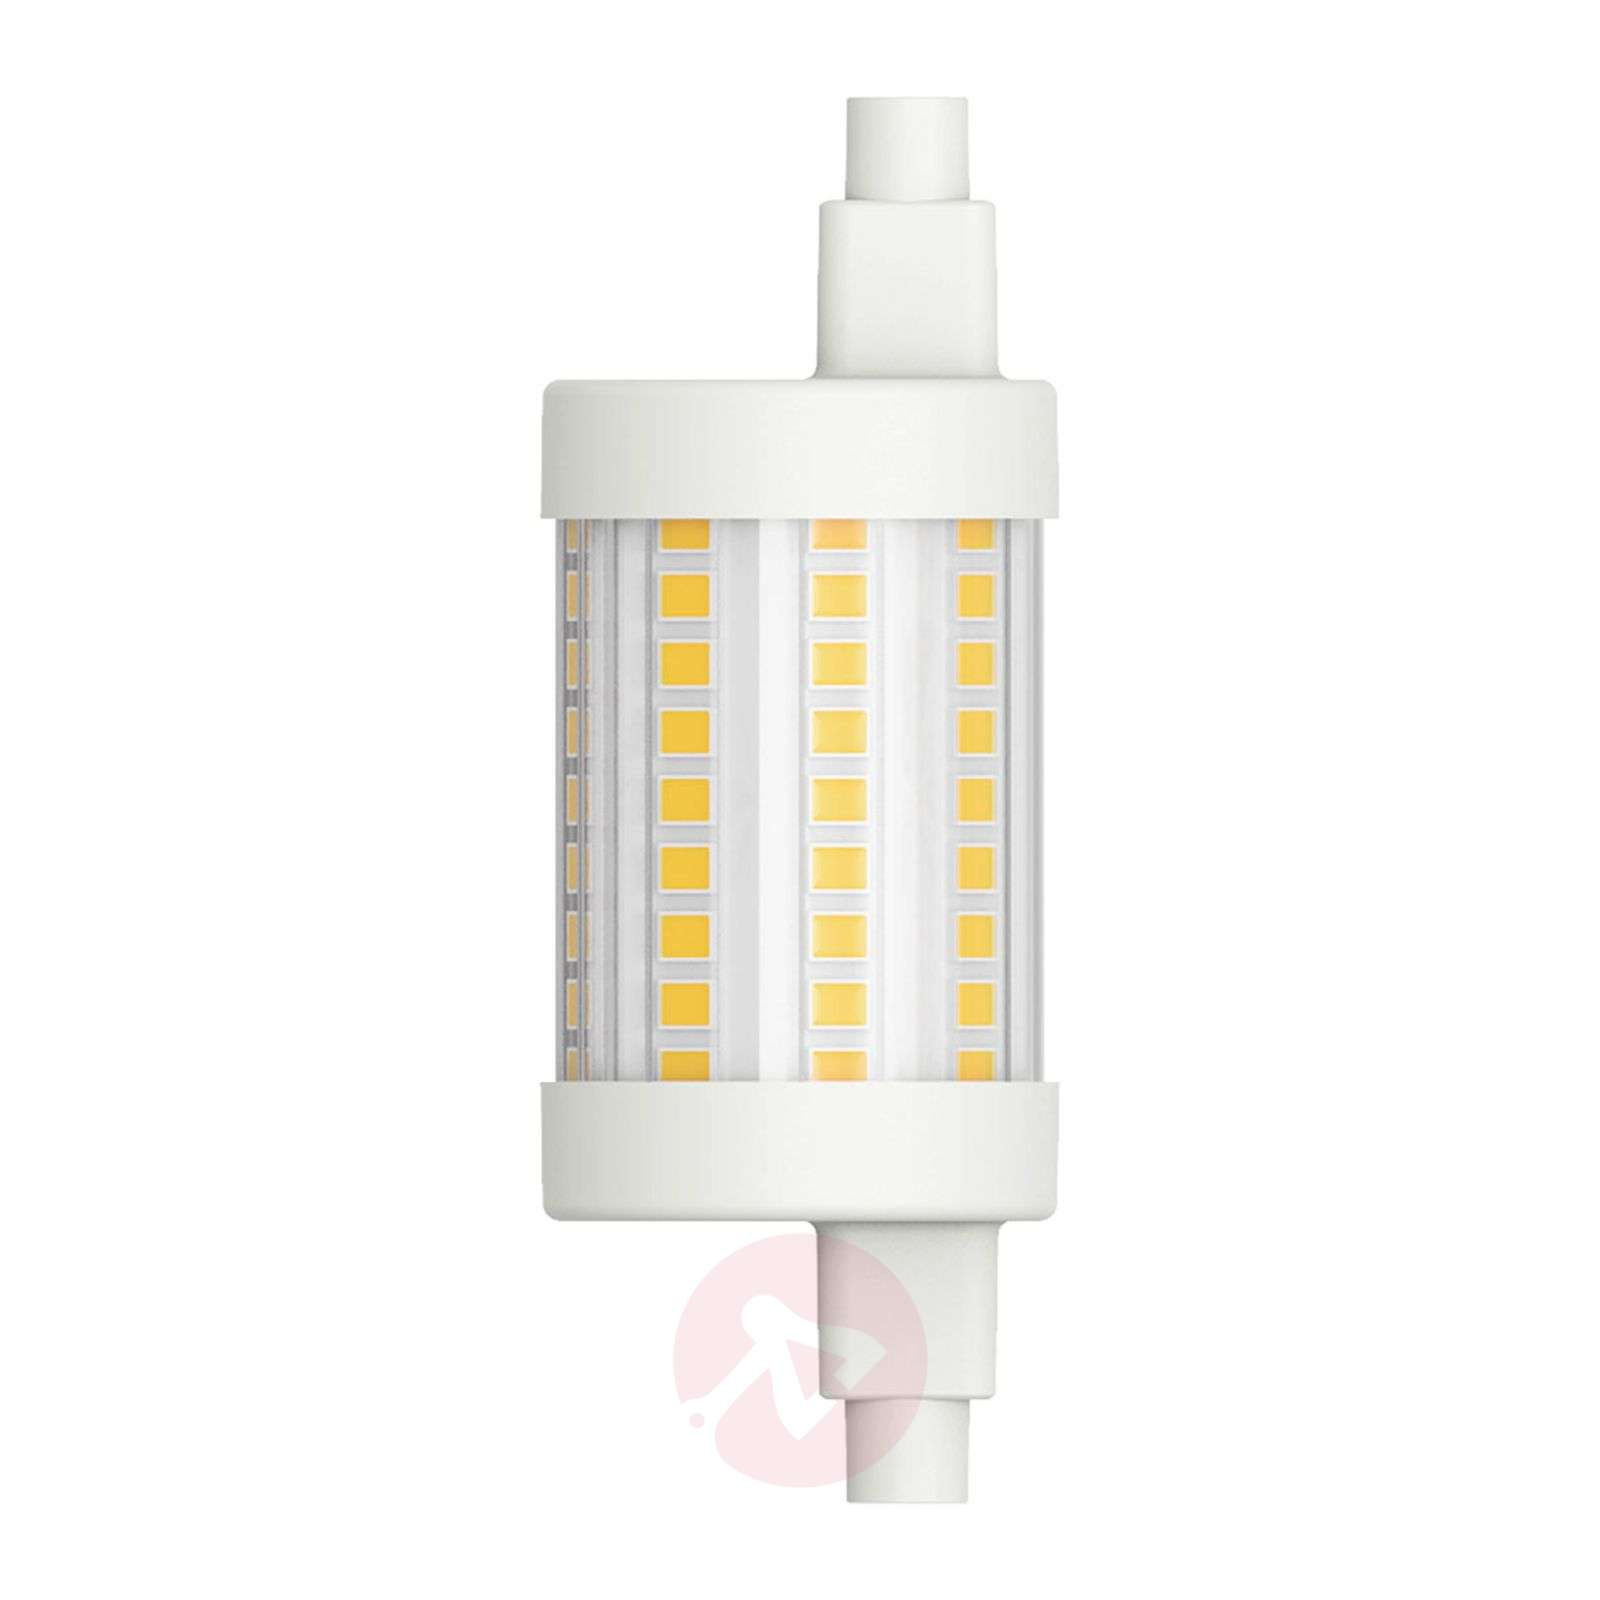 Tube LED R7s 78,3 mm 8 W blanc chaud-6520304-01